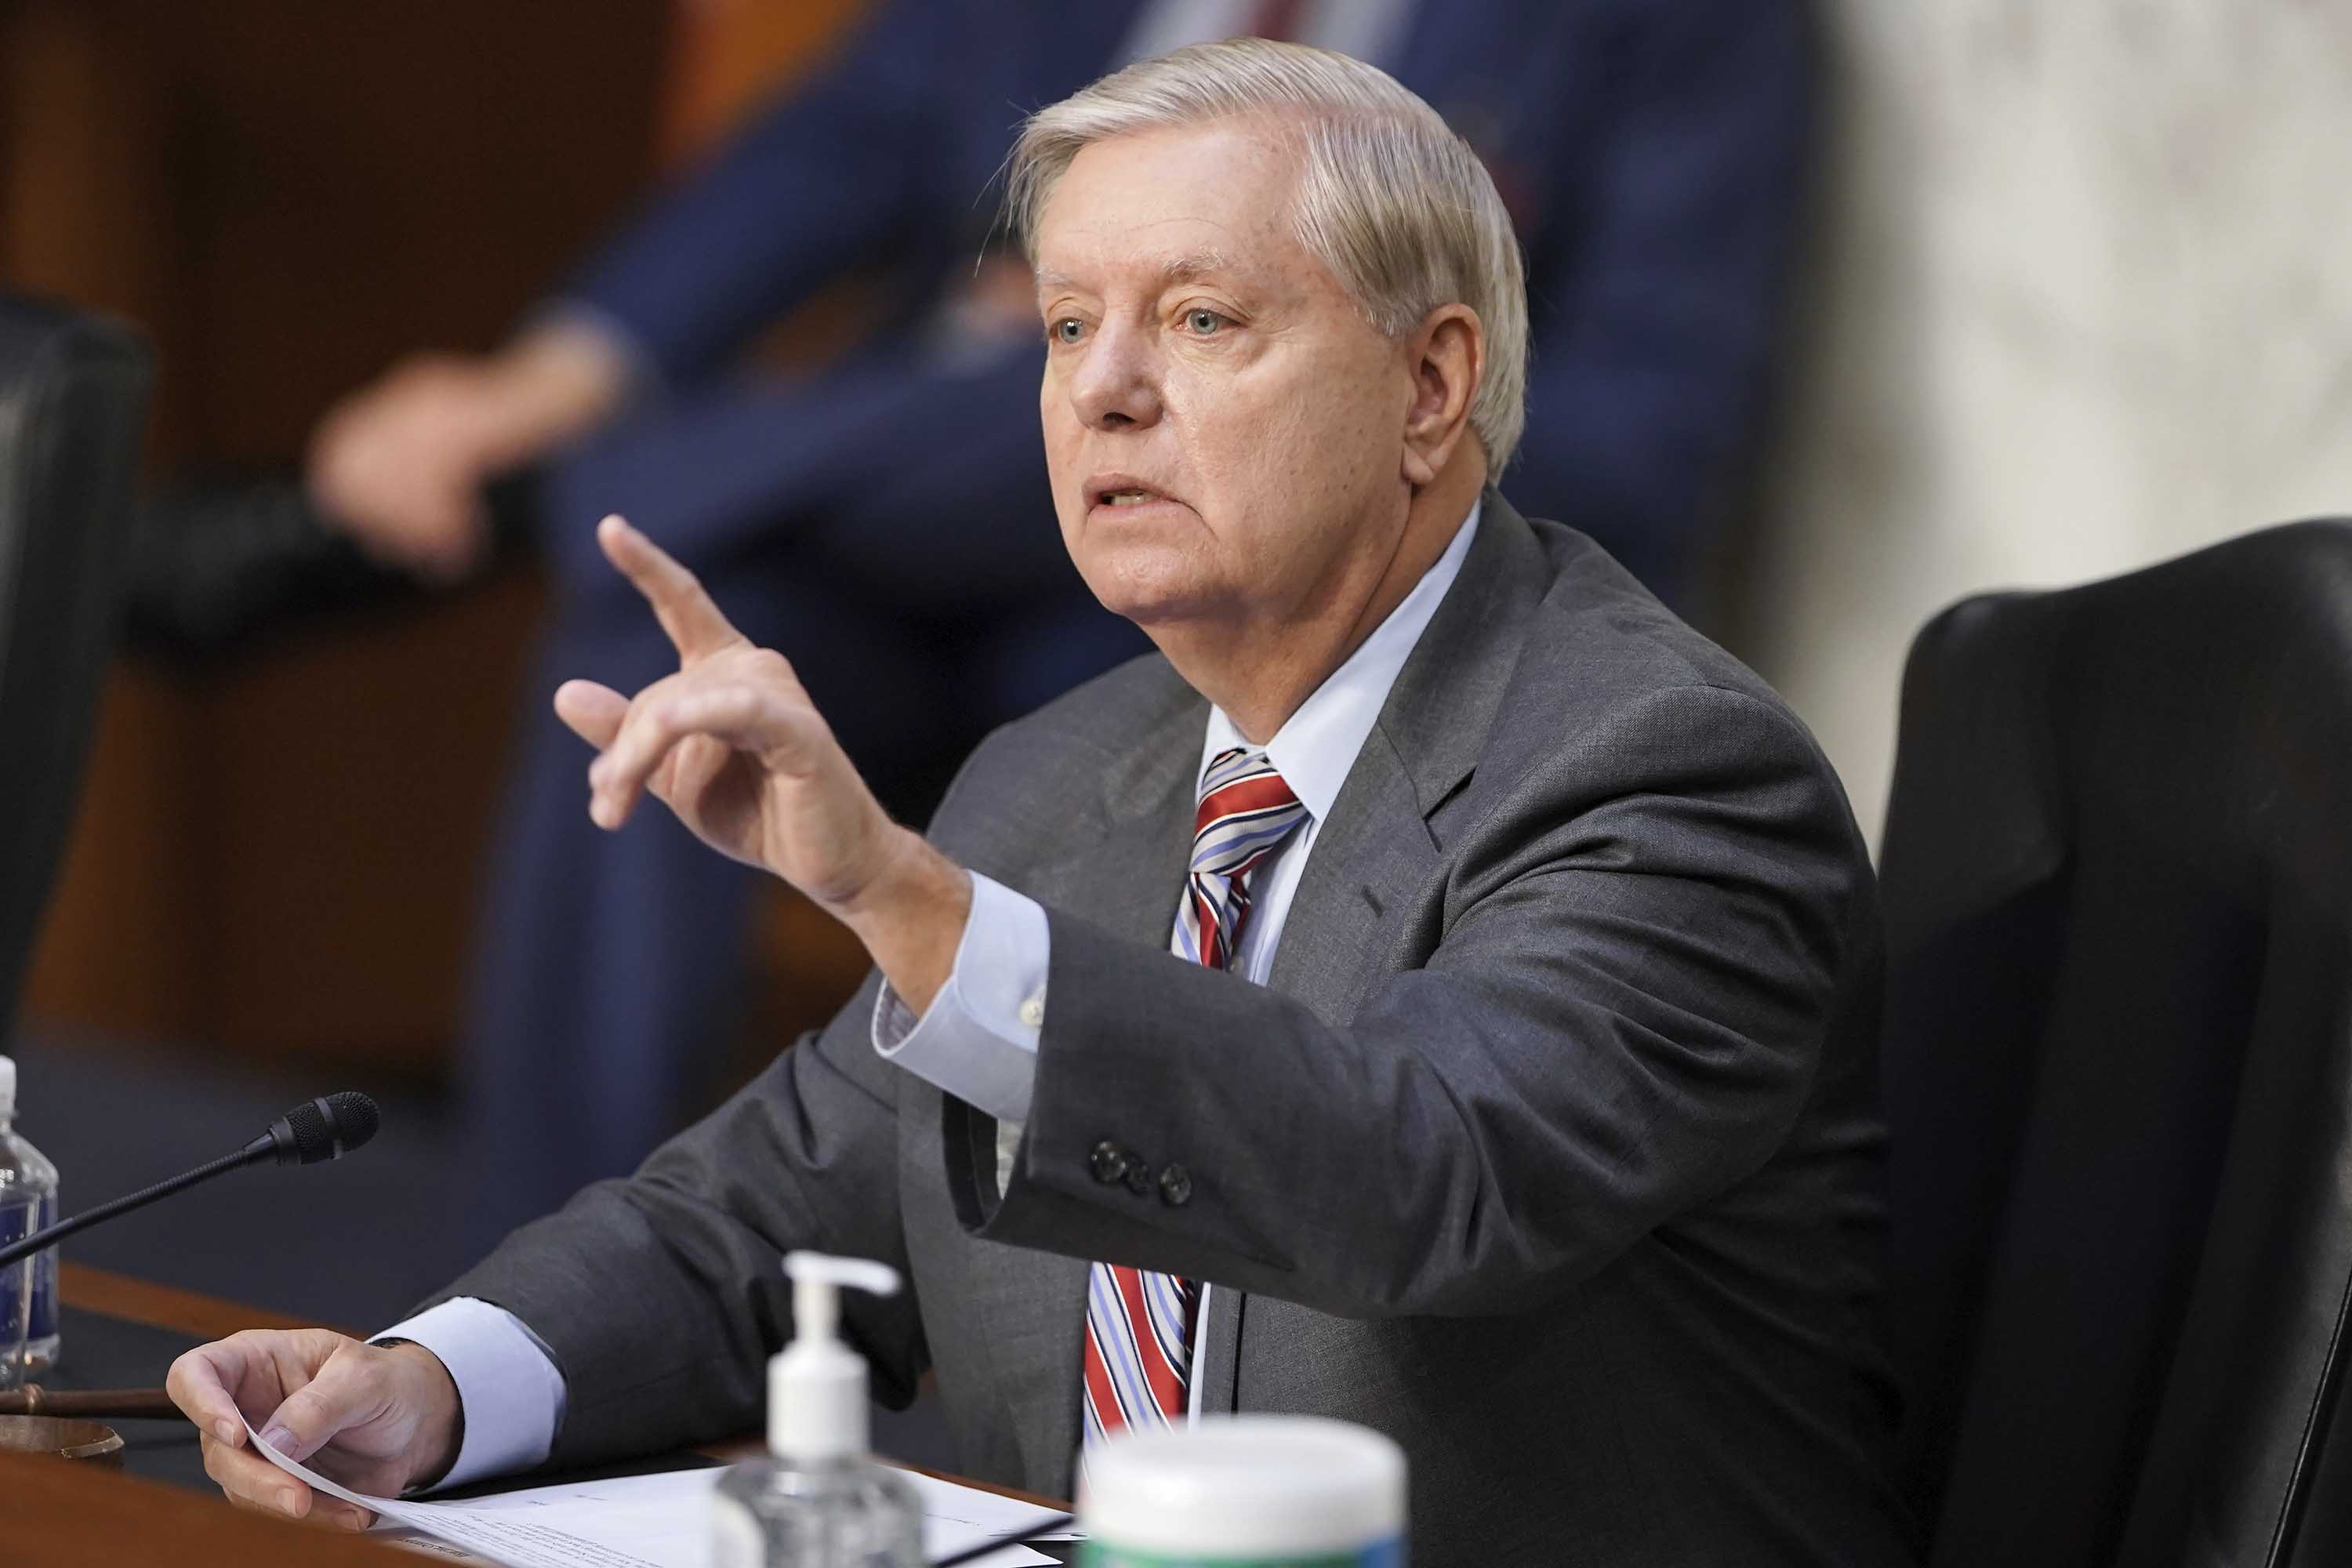 Graham accused of encouraging campaign fundraising within Congress